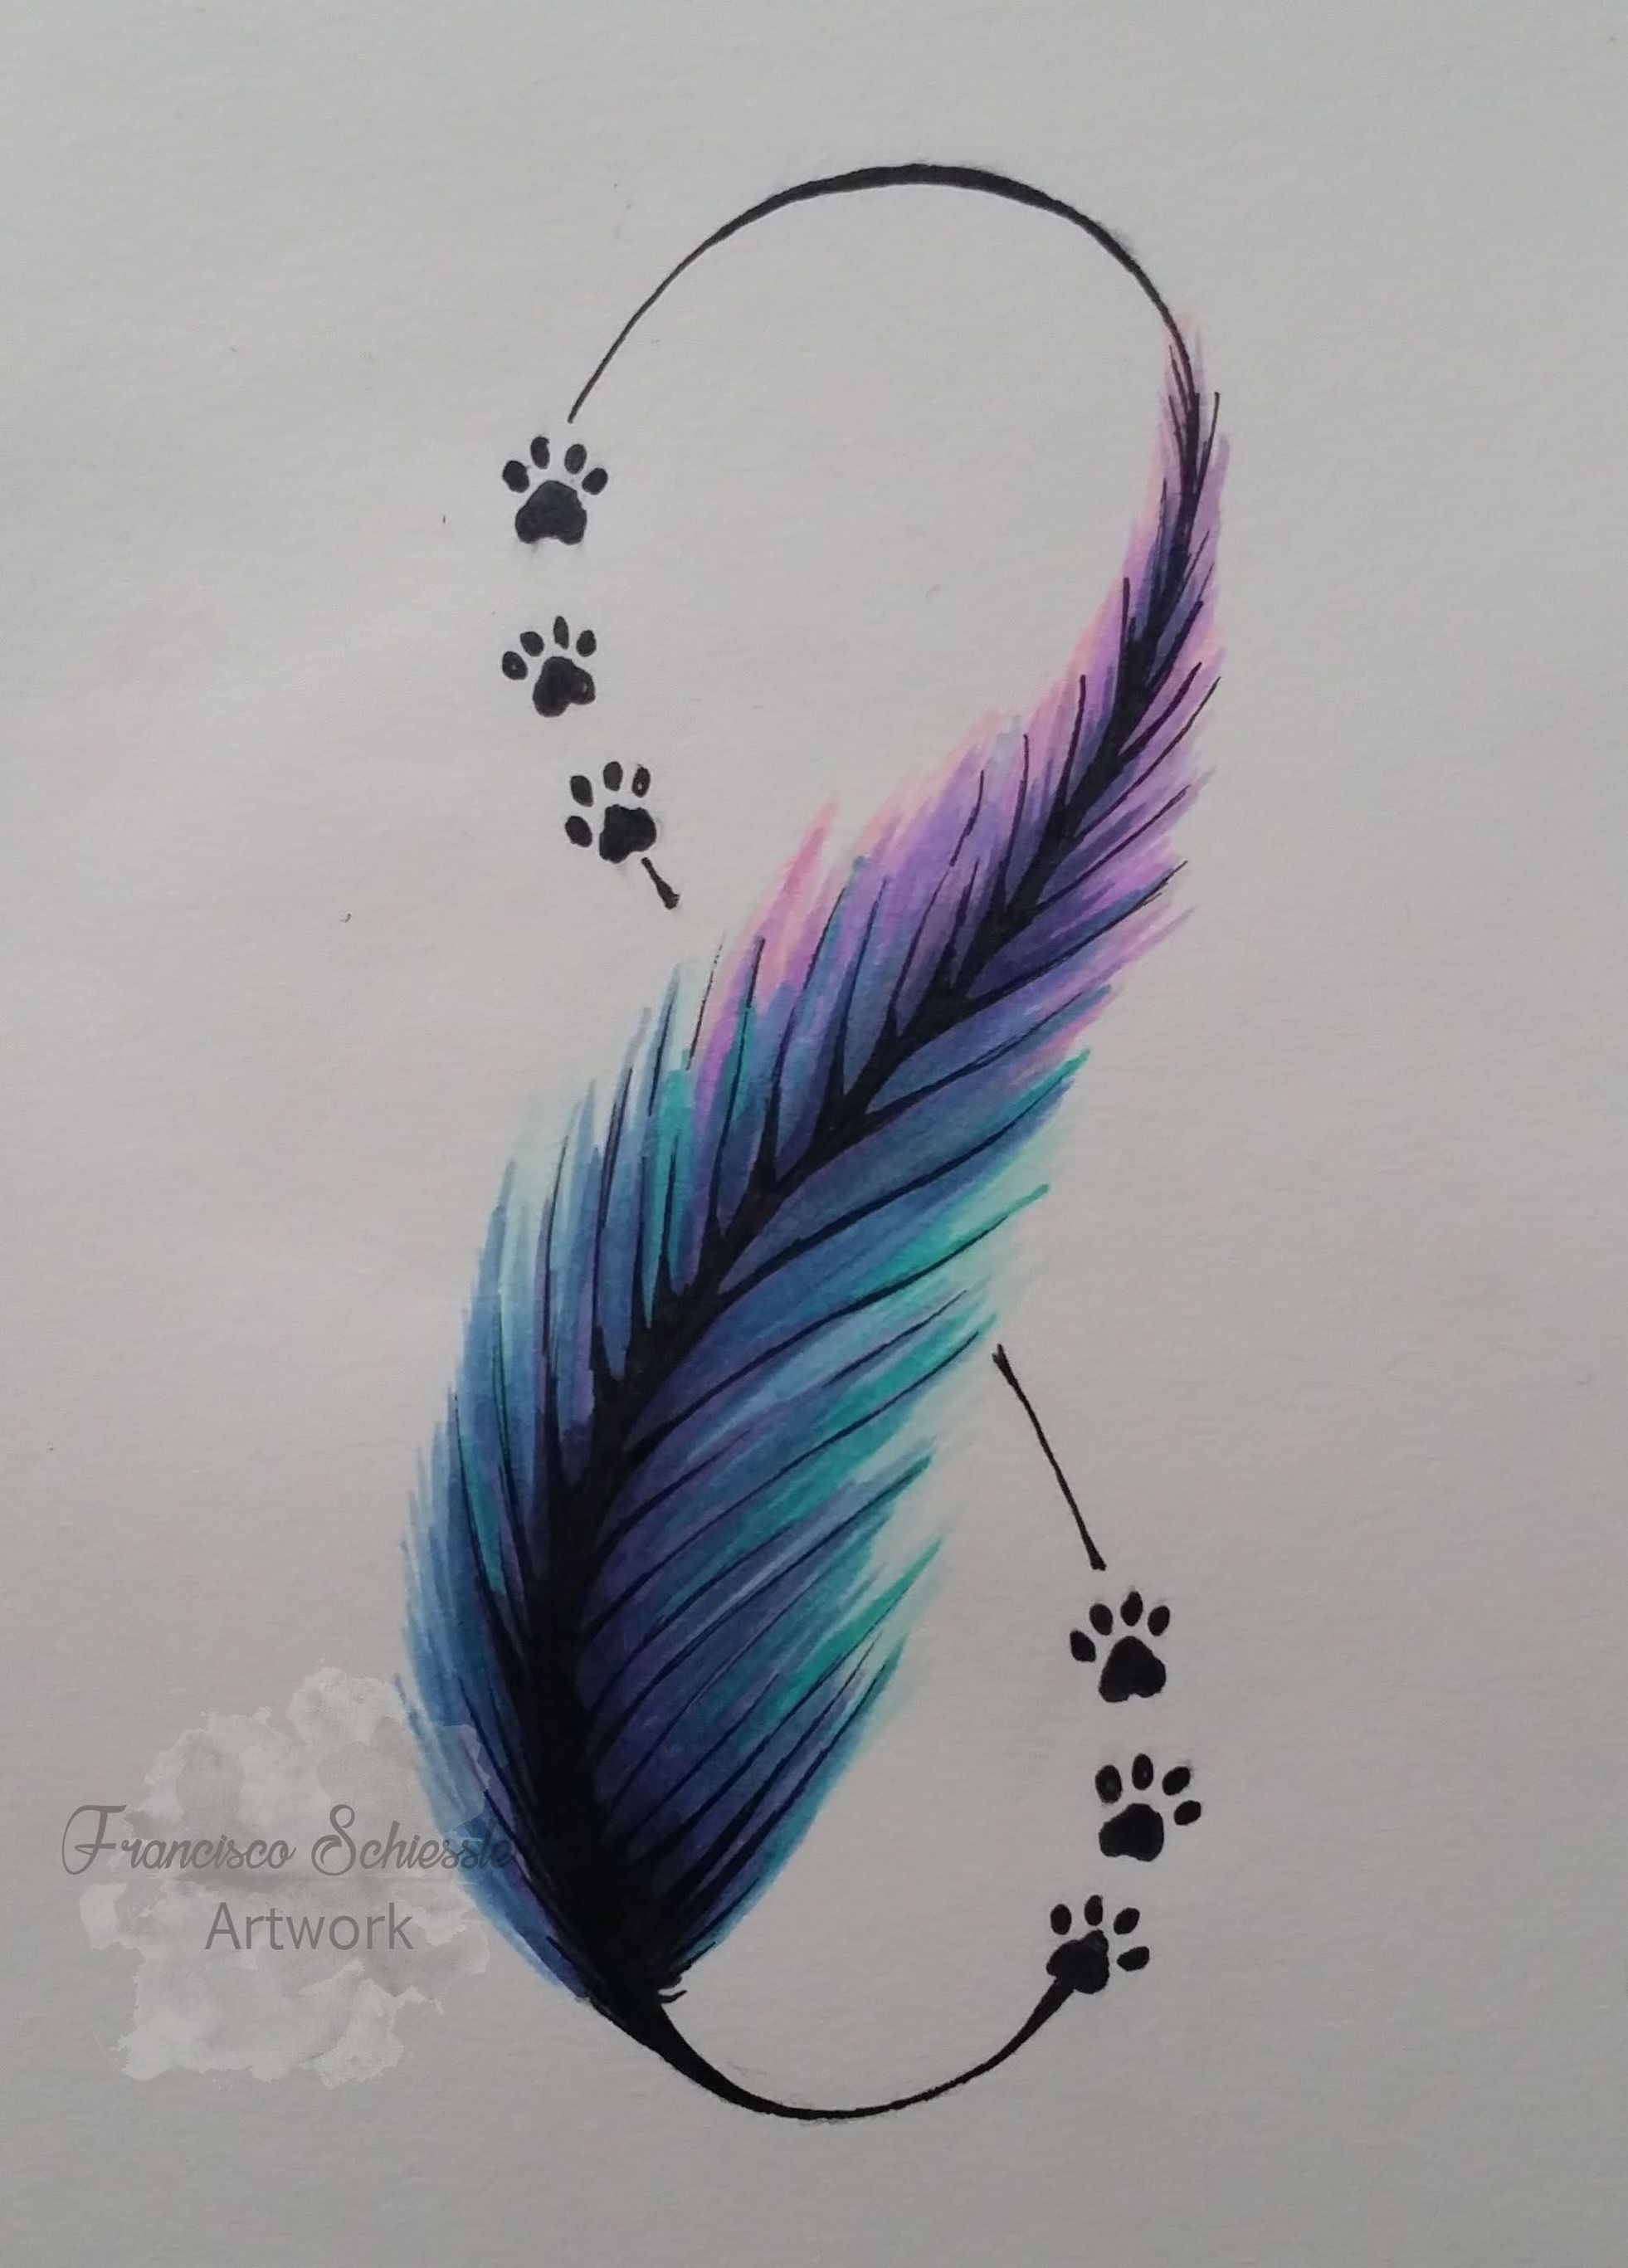 90 Amazing Feather Tattoo Ideas Check Right Now With Images Feather Tattoos Tattoo Design Drawings Tattoos